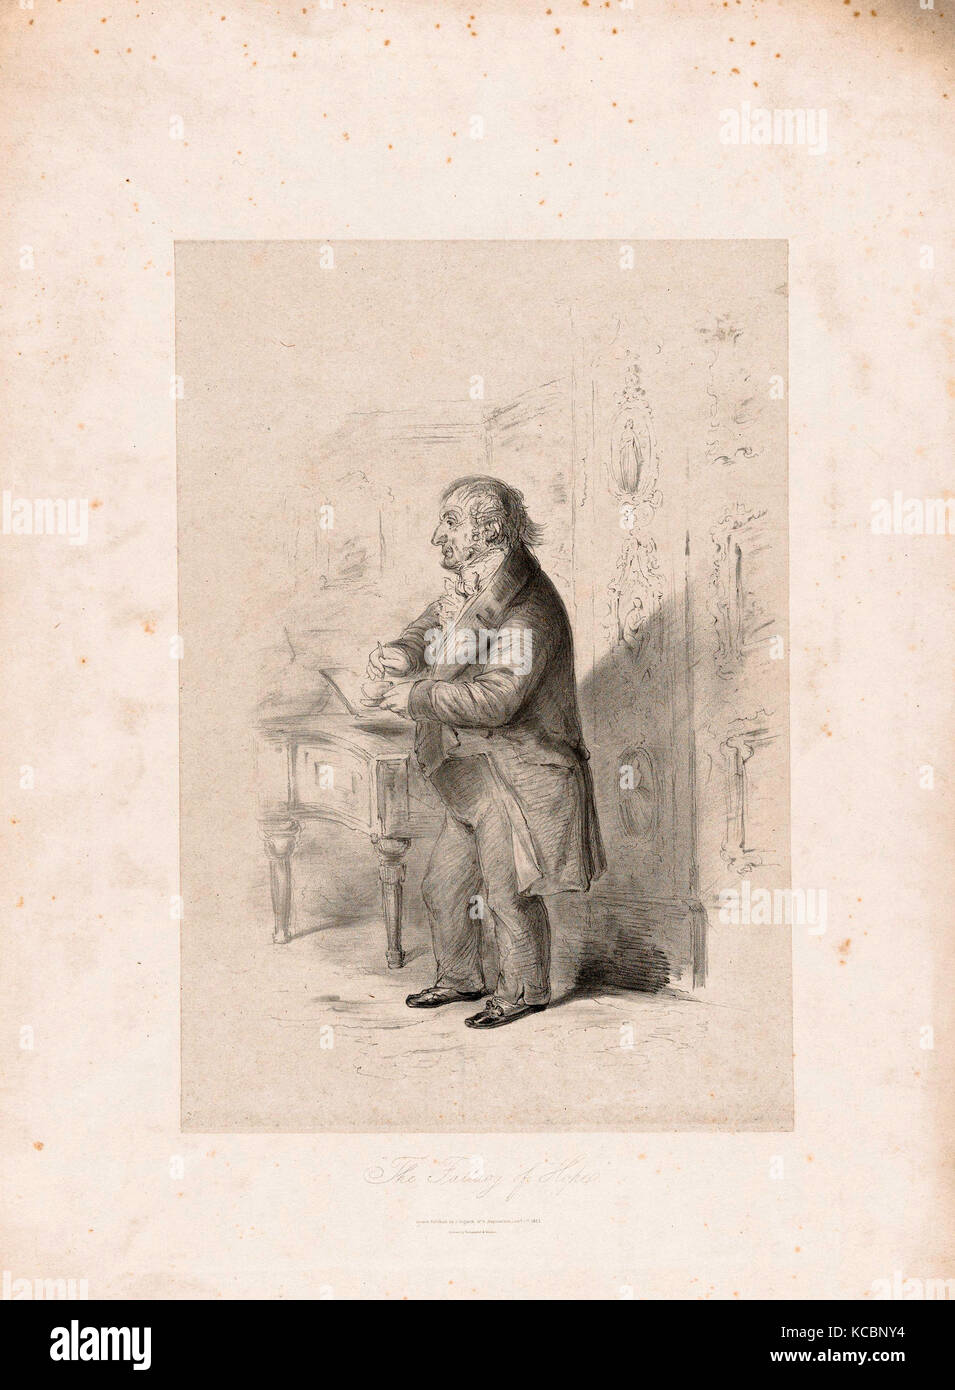 Drawings and Prints, Print, The Fallacy of Hope, Artist, Publisher, Printer, Sitter, Count Alfred Guillaume Gabriel - Stock Image